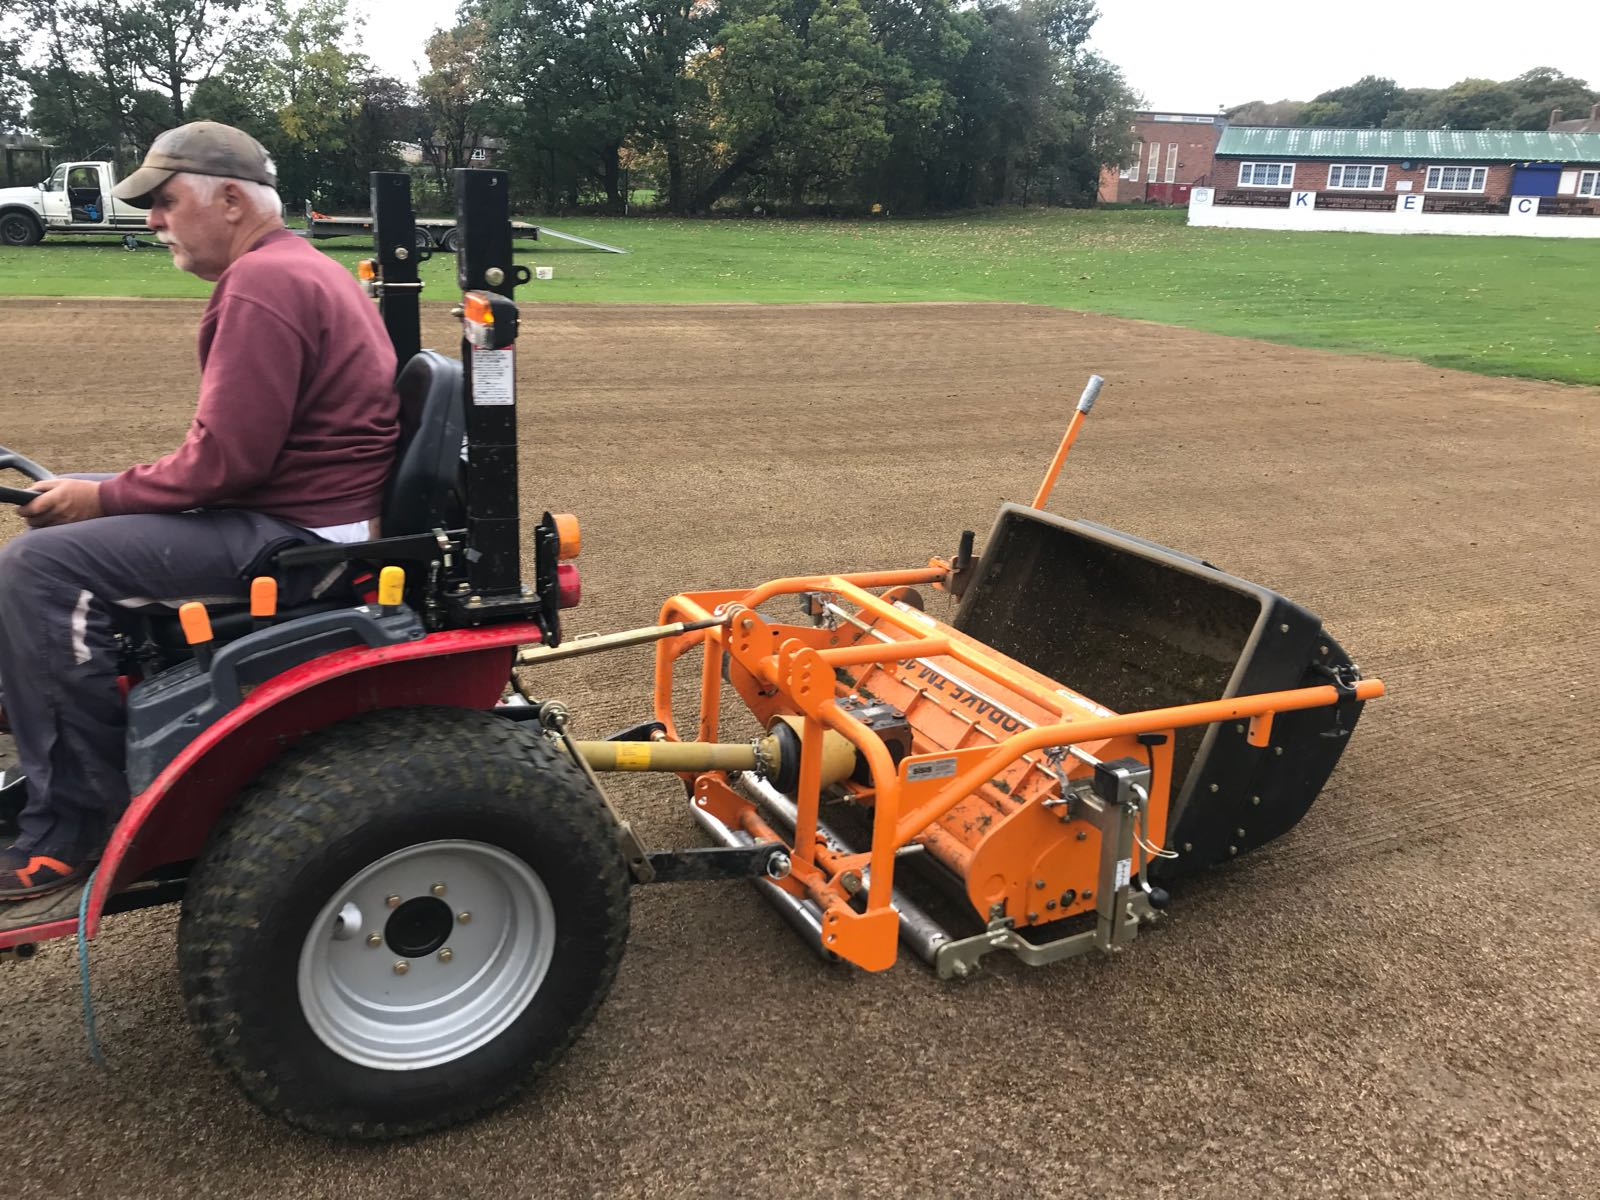 SISIS TM1000 recommended for local cricket clubs